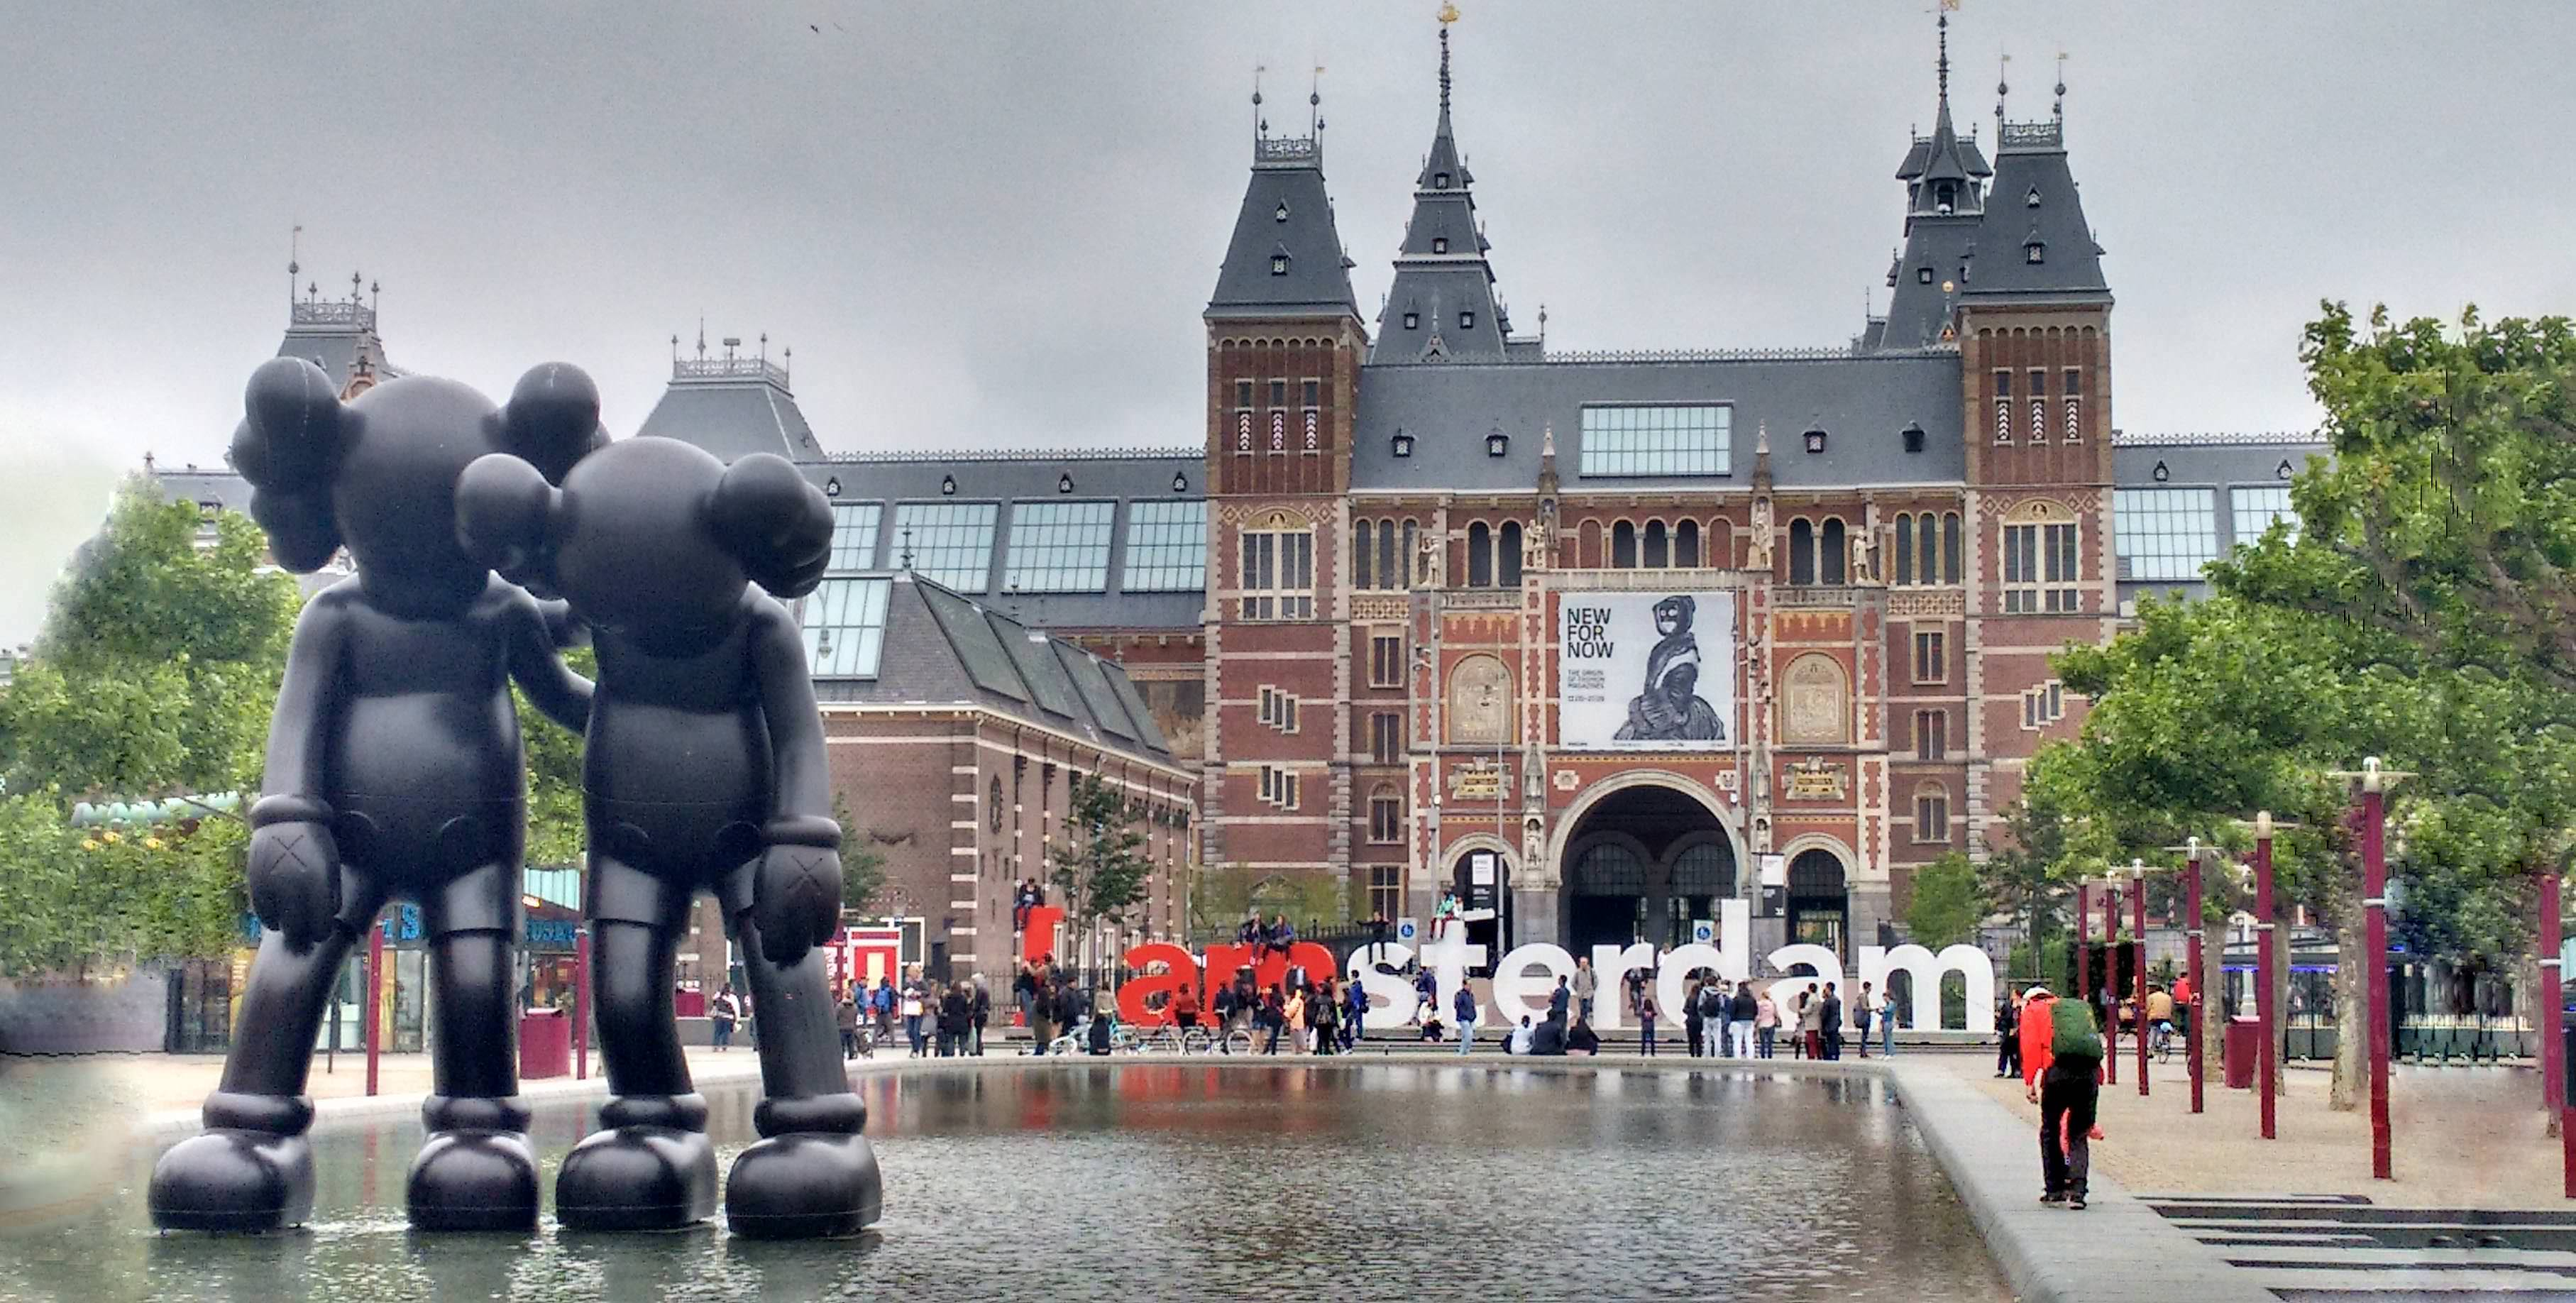 The Top 3 Best Museums in the World feature 2 Dutch Classics